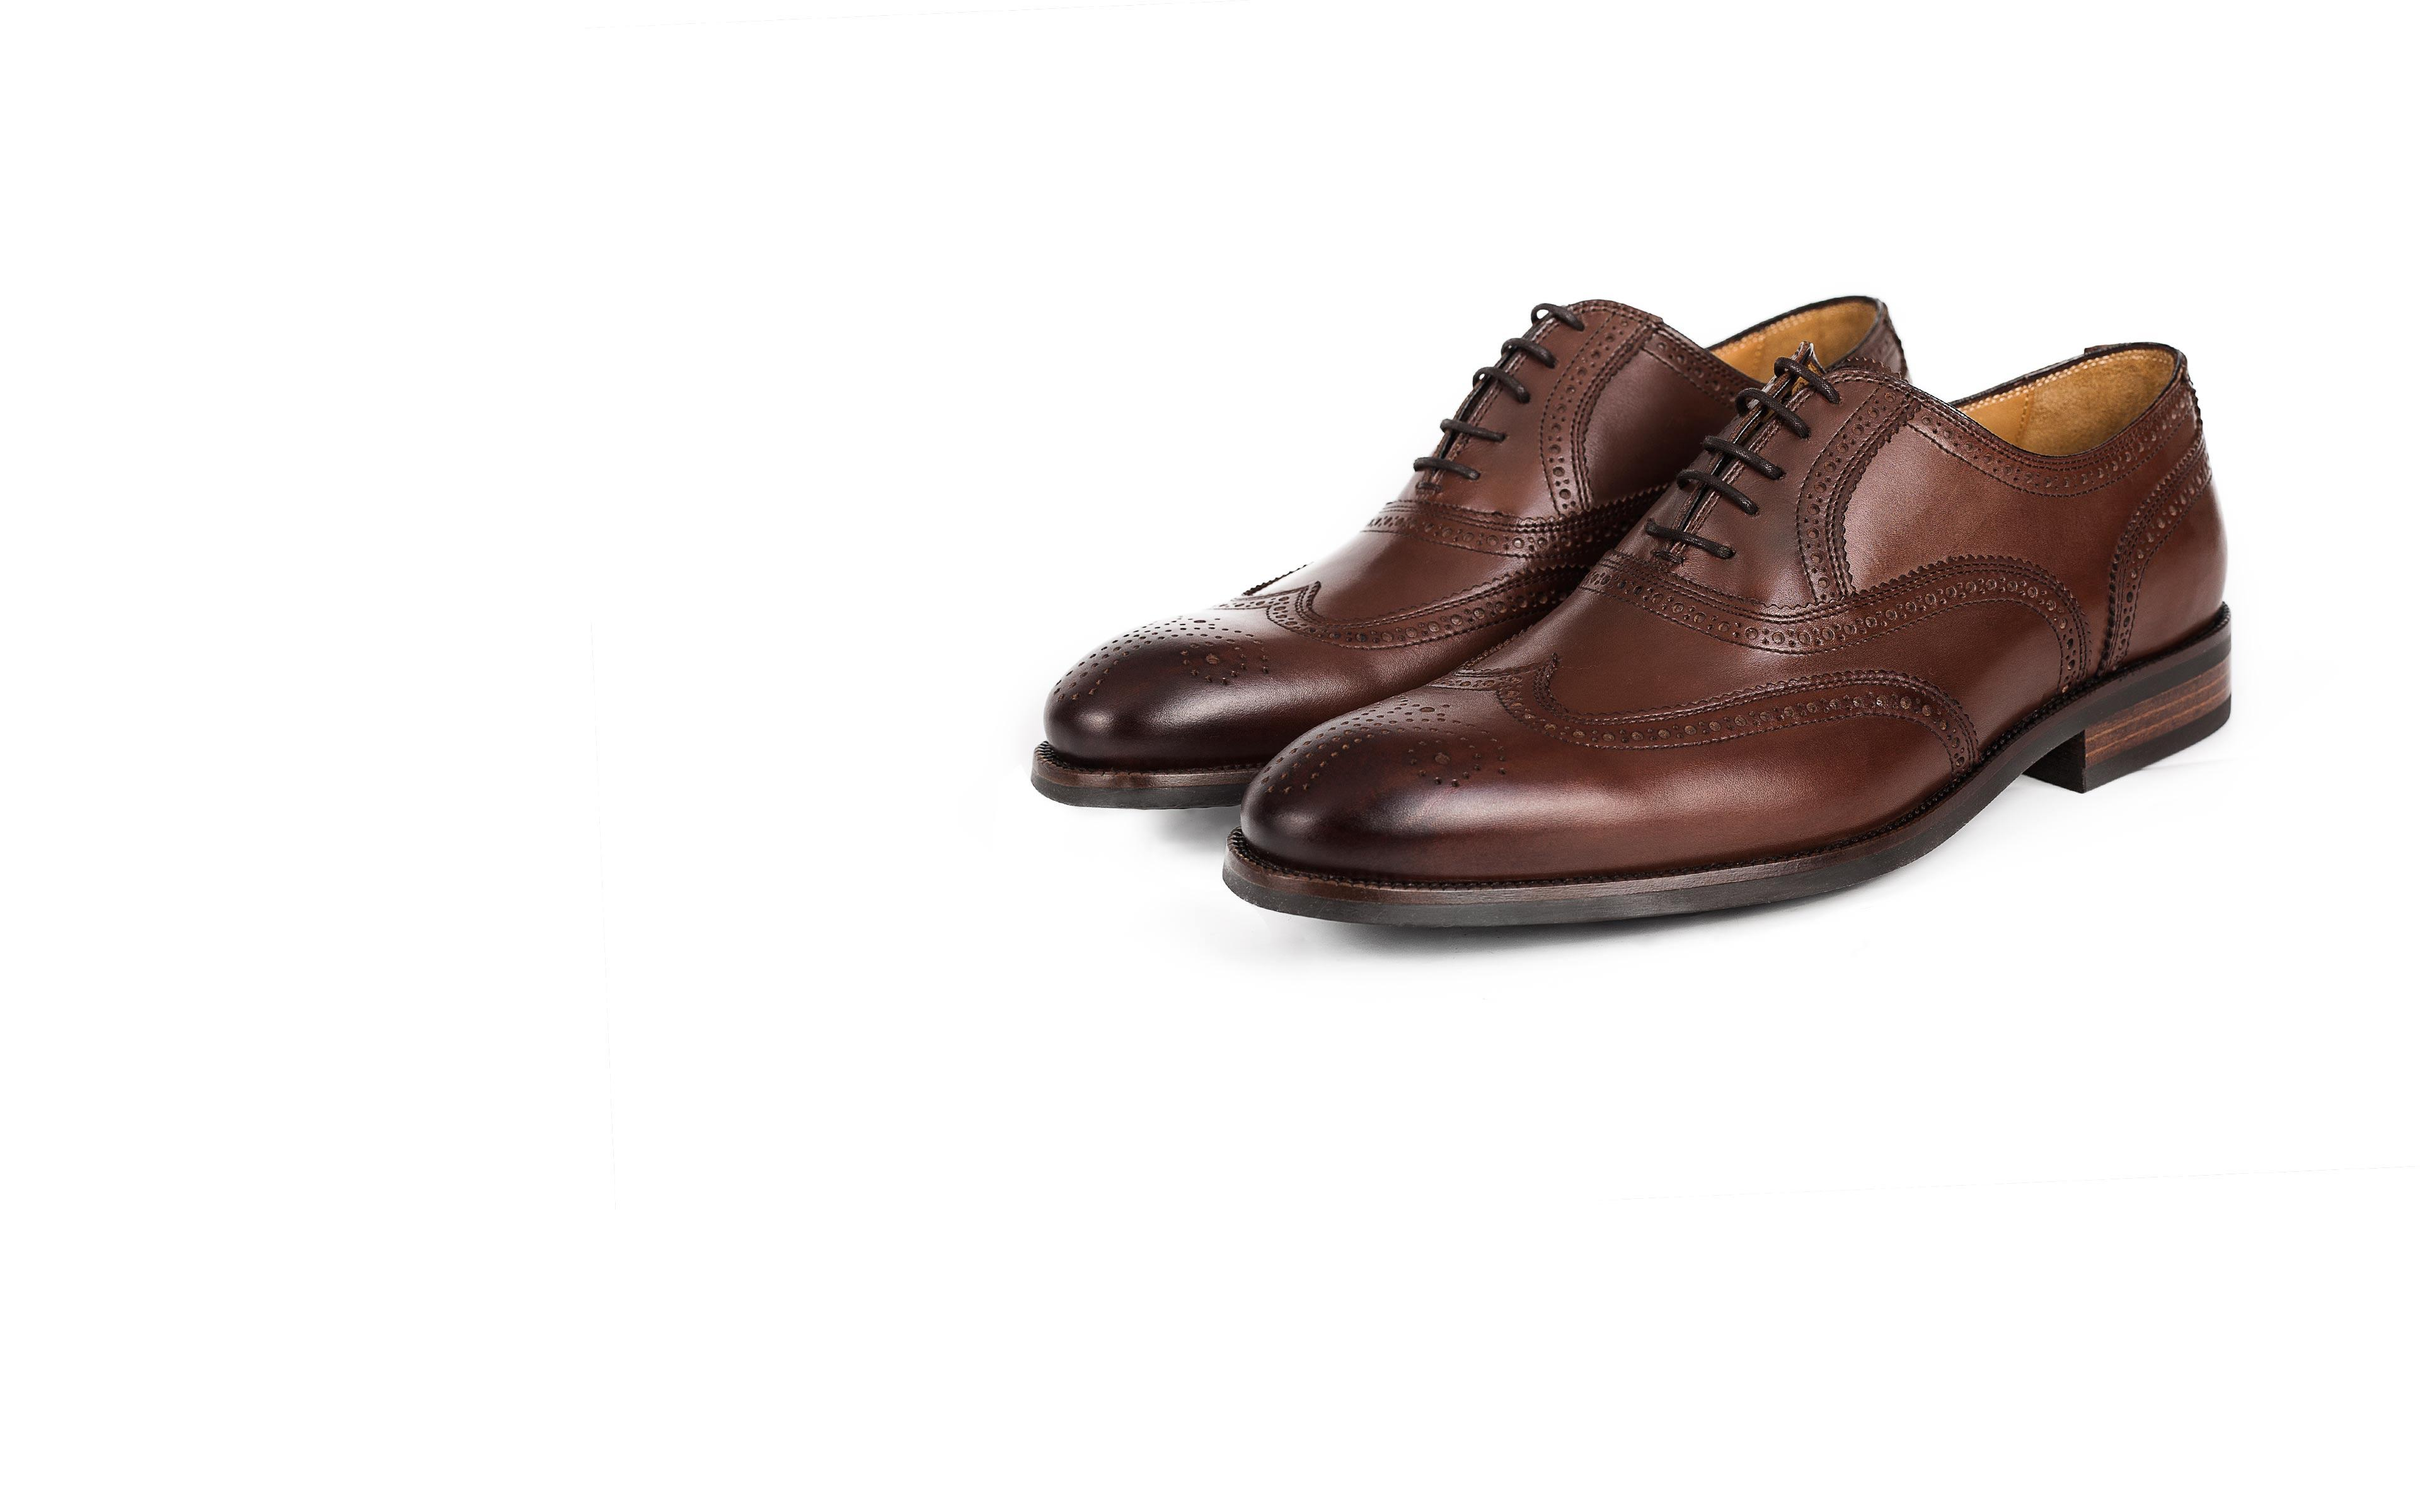 Walnut Wingtip Oxford with a Rubber Sole